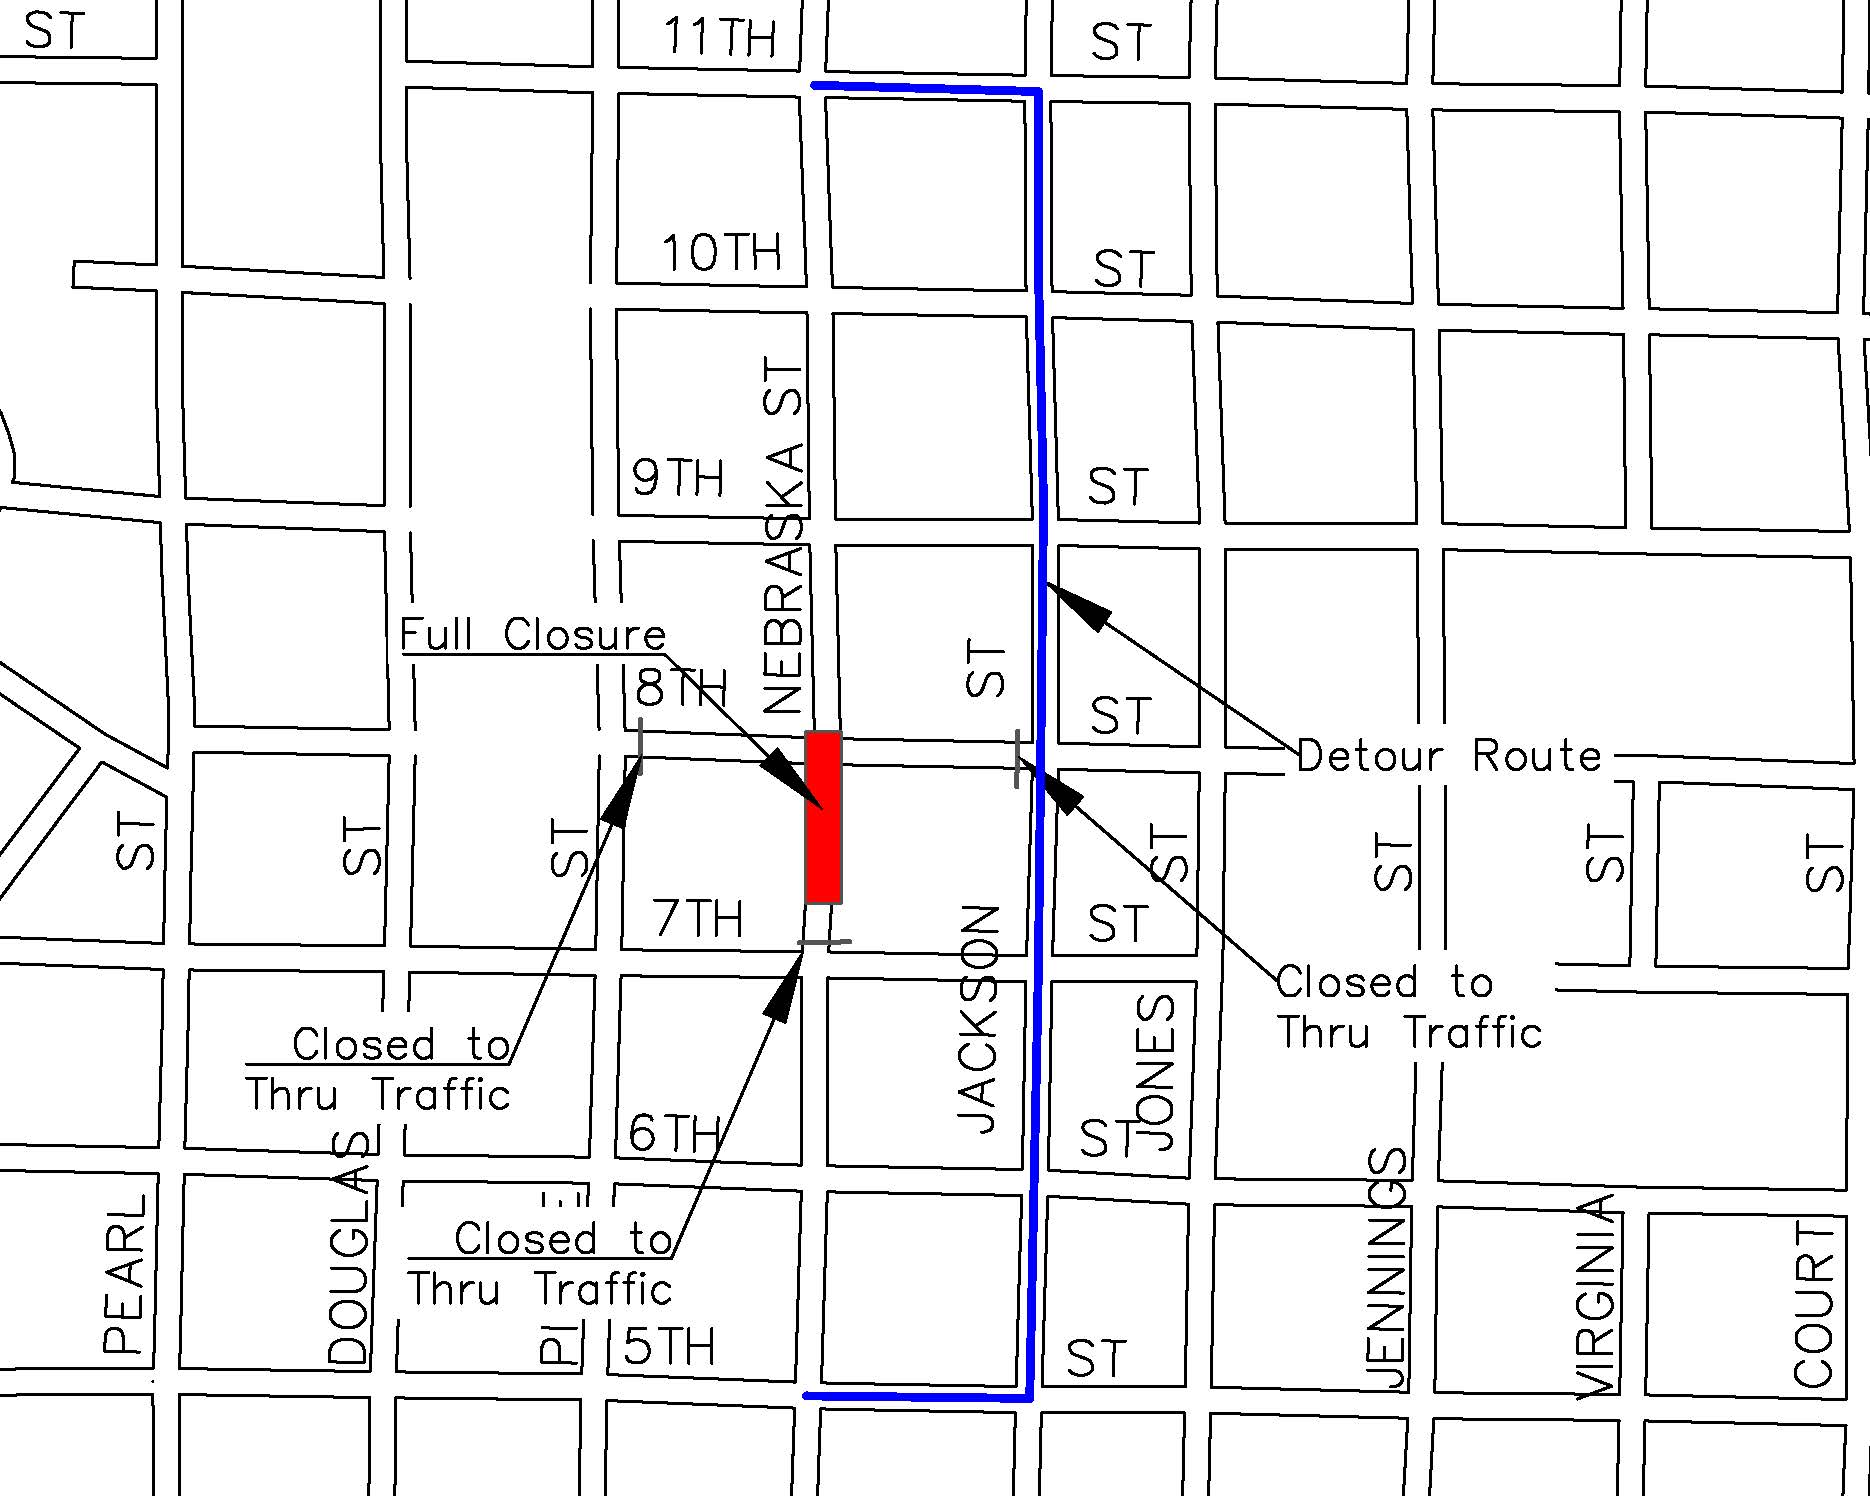 8th Street and Nebraska Intersection Closure | Press Releases | City ...